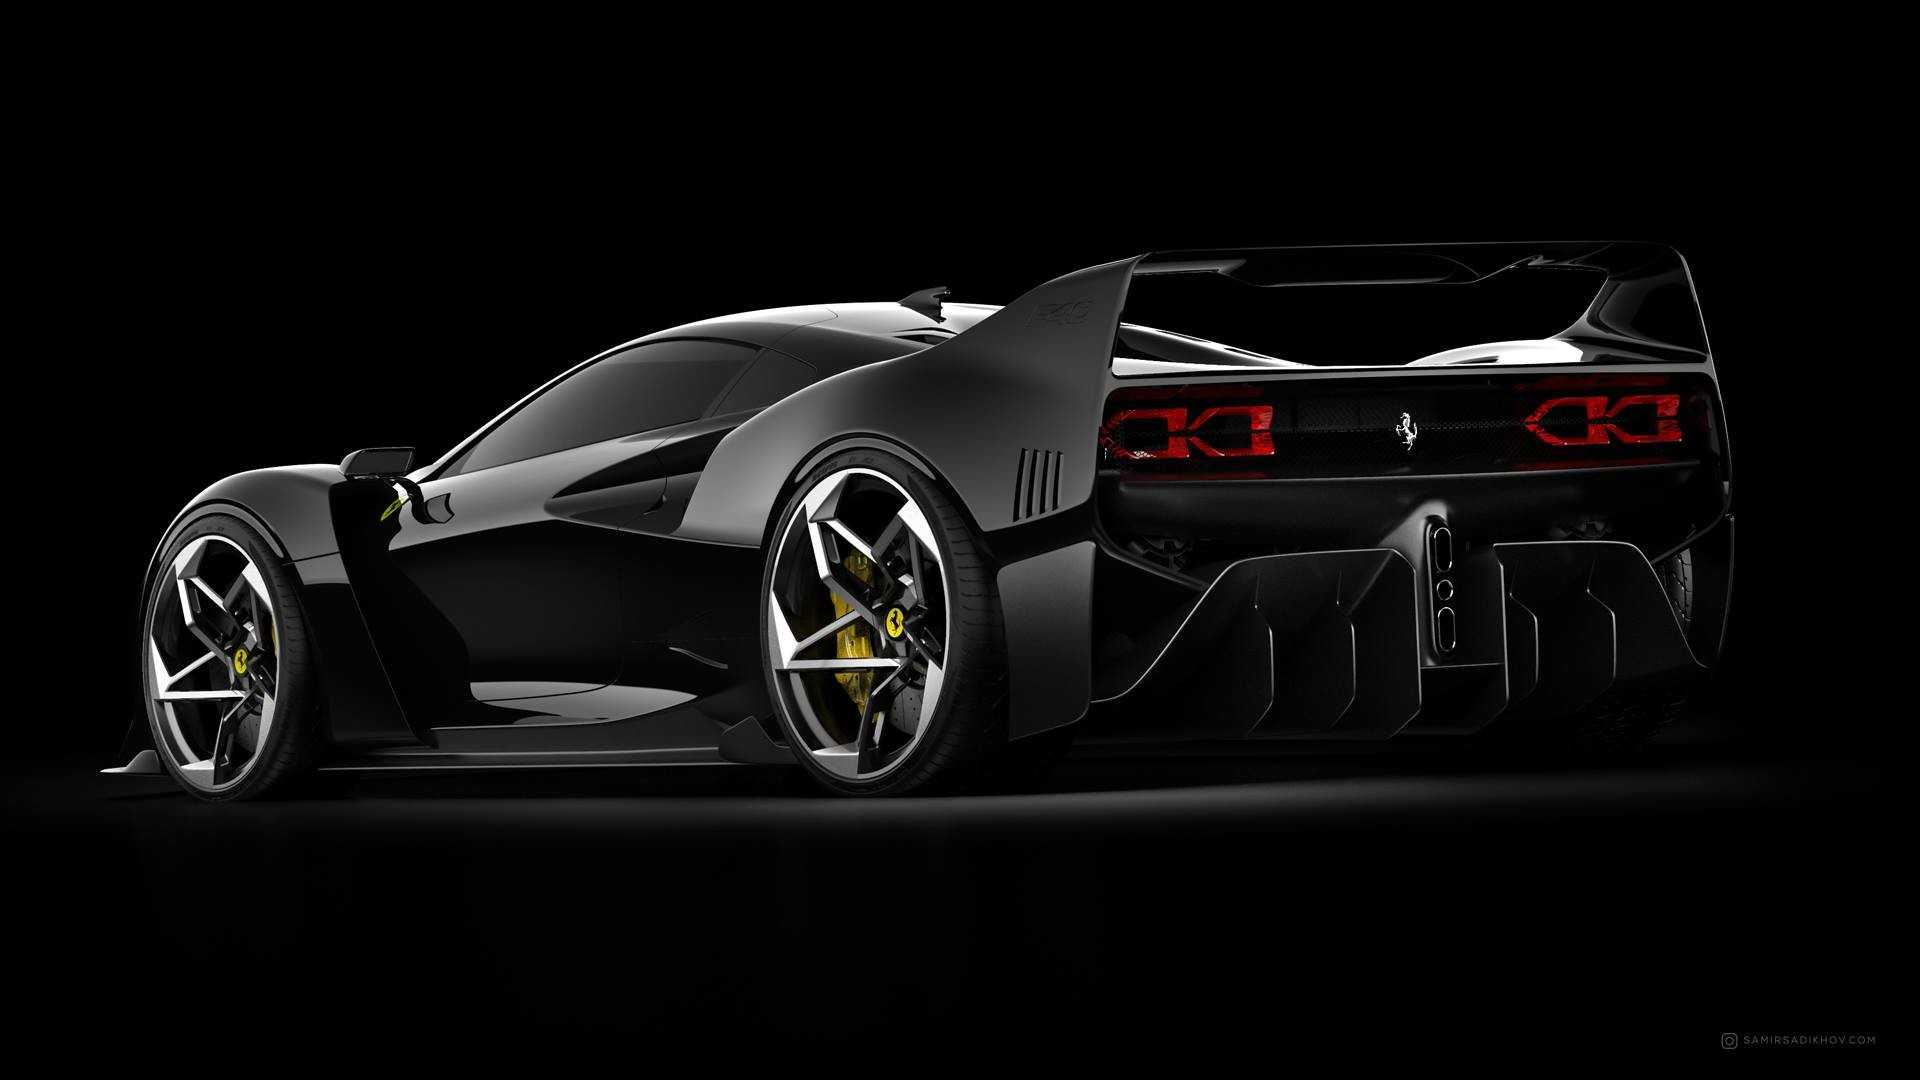 Ferrari F40 Tribute Is Stunning From All Angles